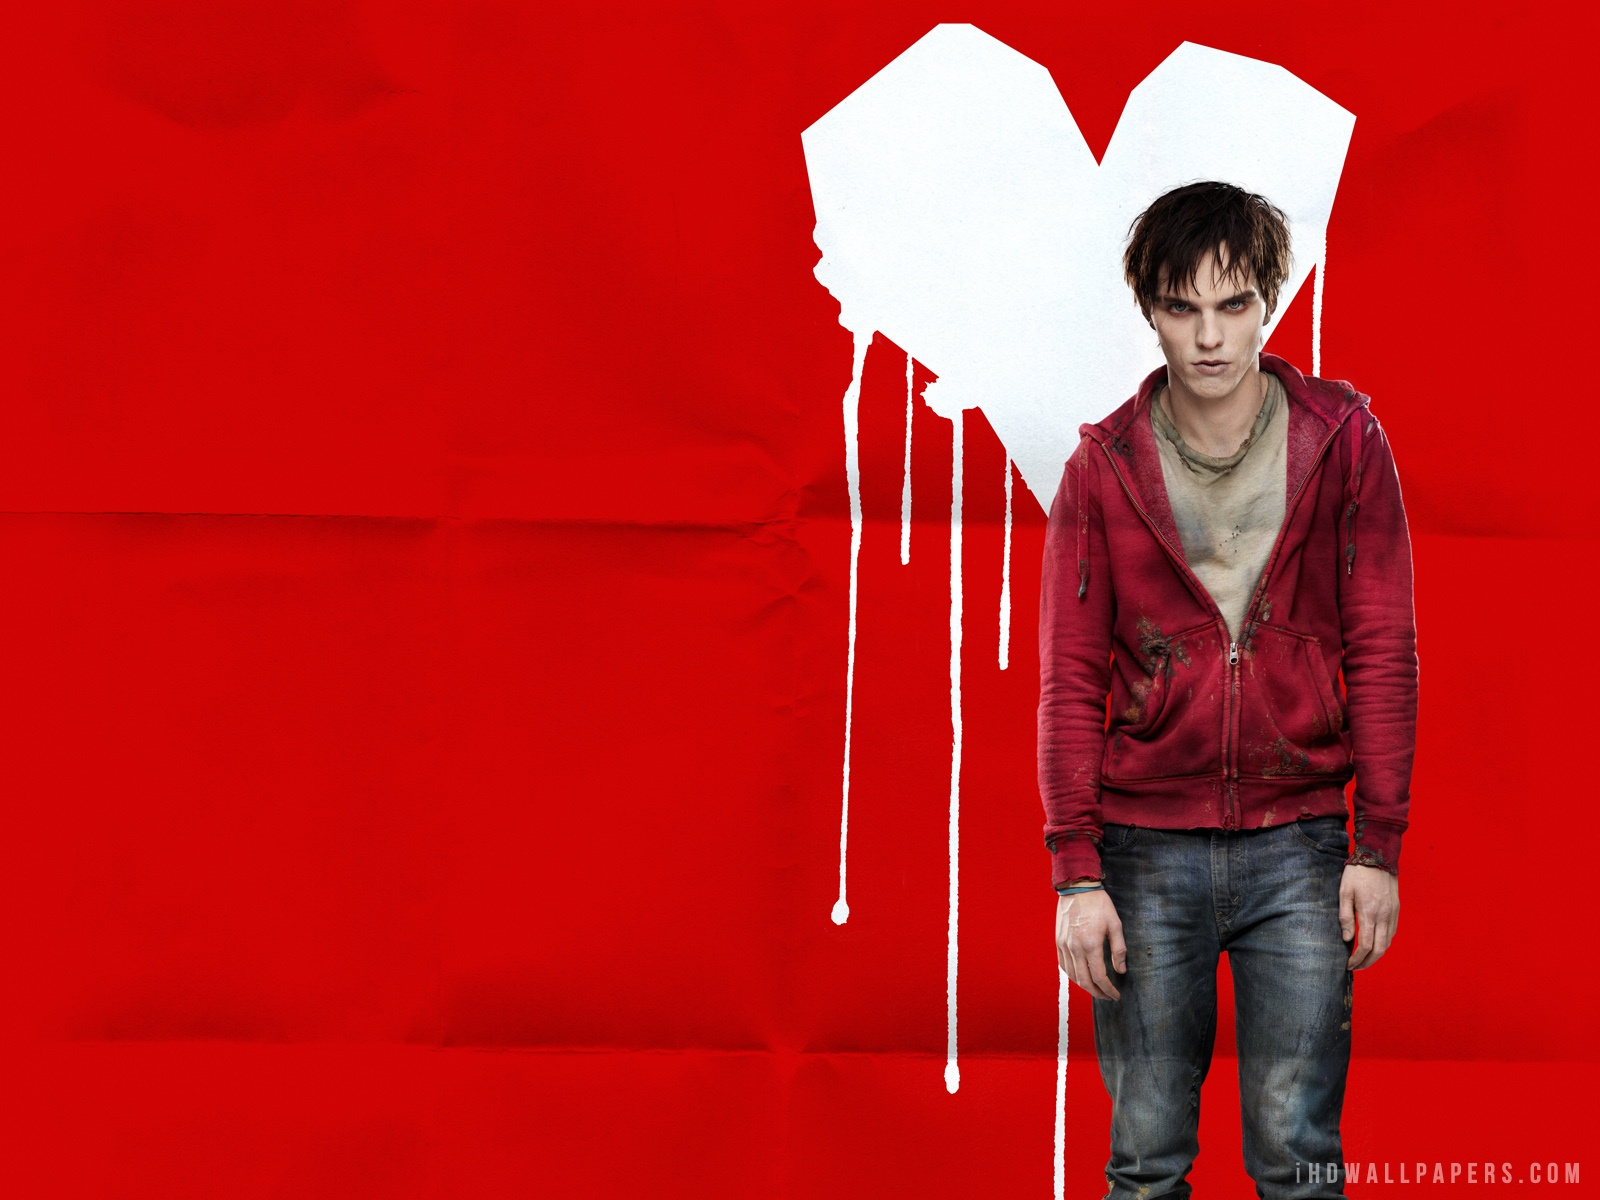 nicholas hoult wallpaper background - photo #2